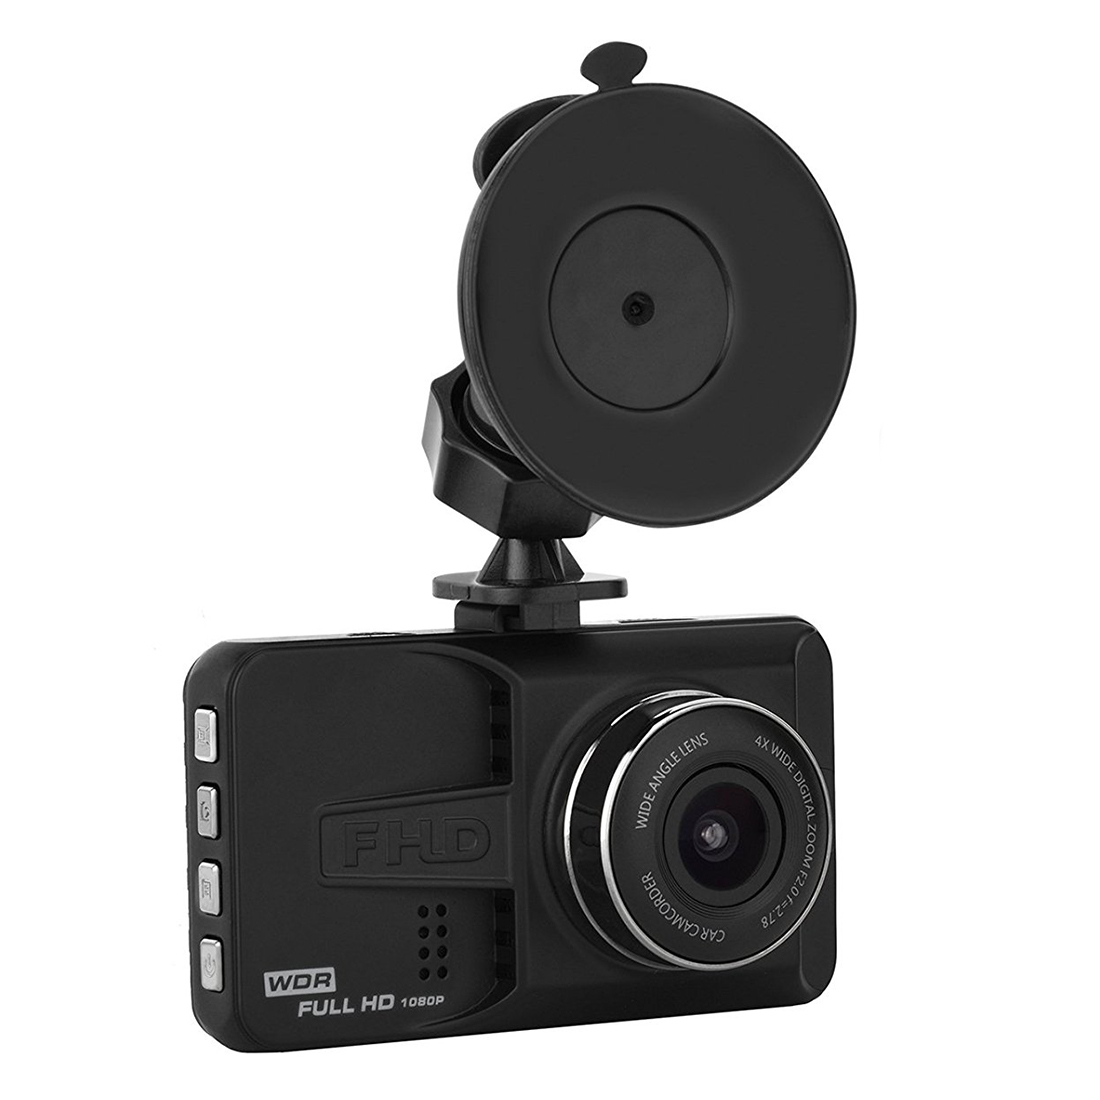 AUTO -Car Black Box, Dashboard Camera Recorder with 4 Wide Digital Zoom, Dash Cam with 3.0 inch IPS, 1080P FHD, G-Sensor, WDR,